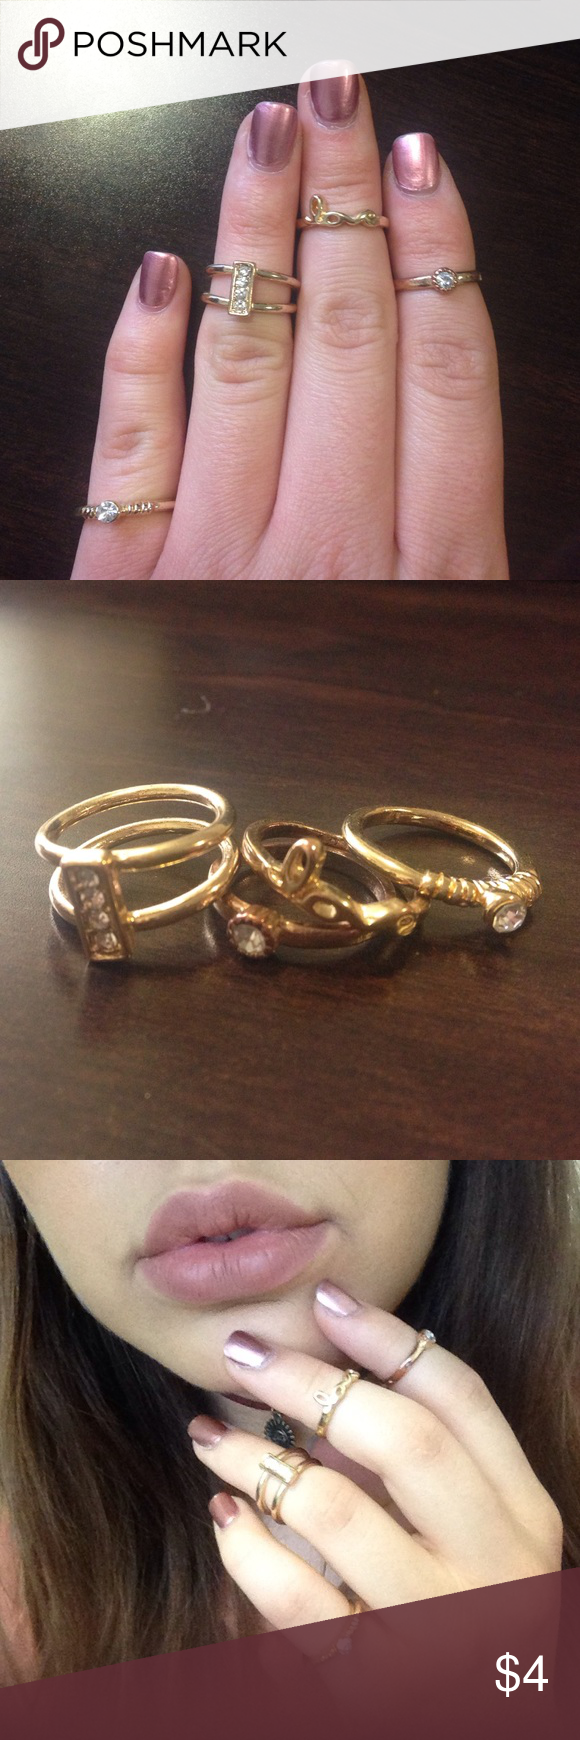 4-Piece gold ring set 4 gold midi or pinky rings with crystals, very cute and fun together or dainty and casual on their own Jewelry Rings